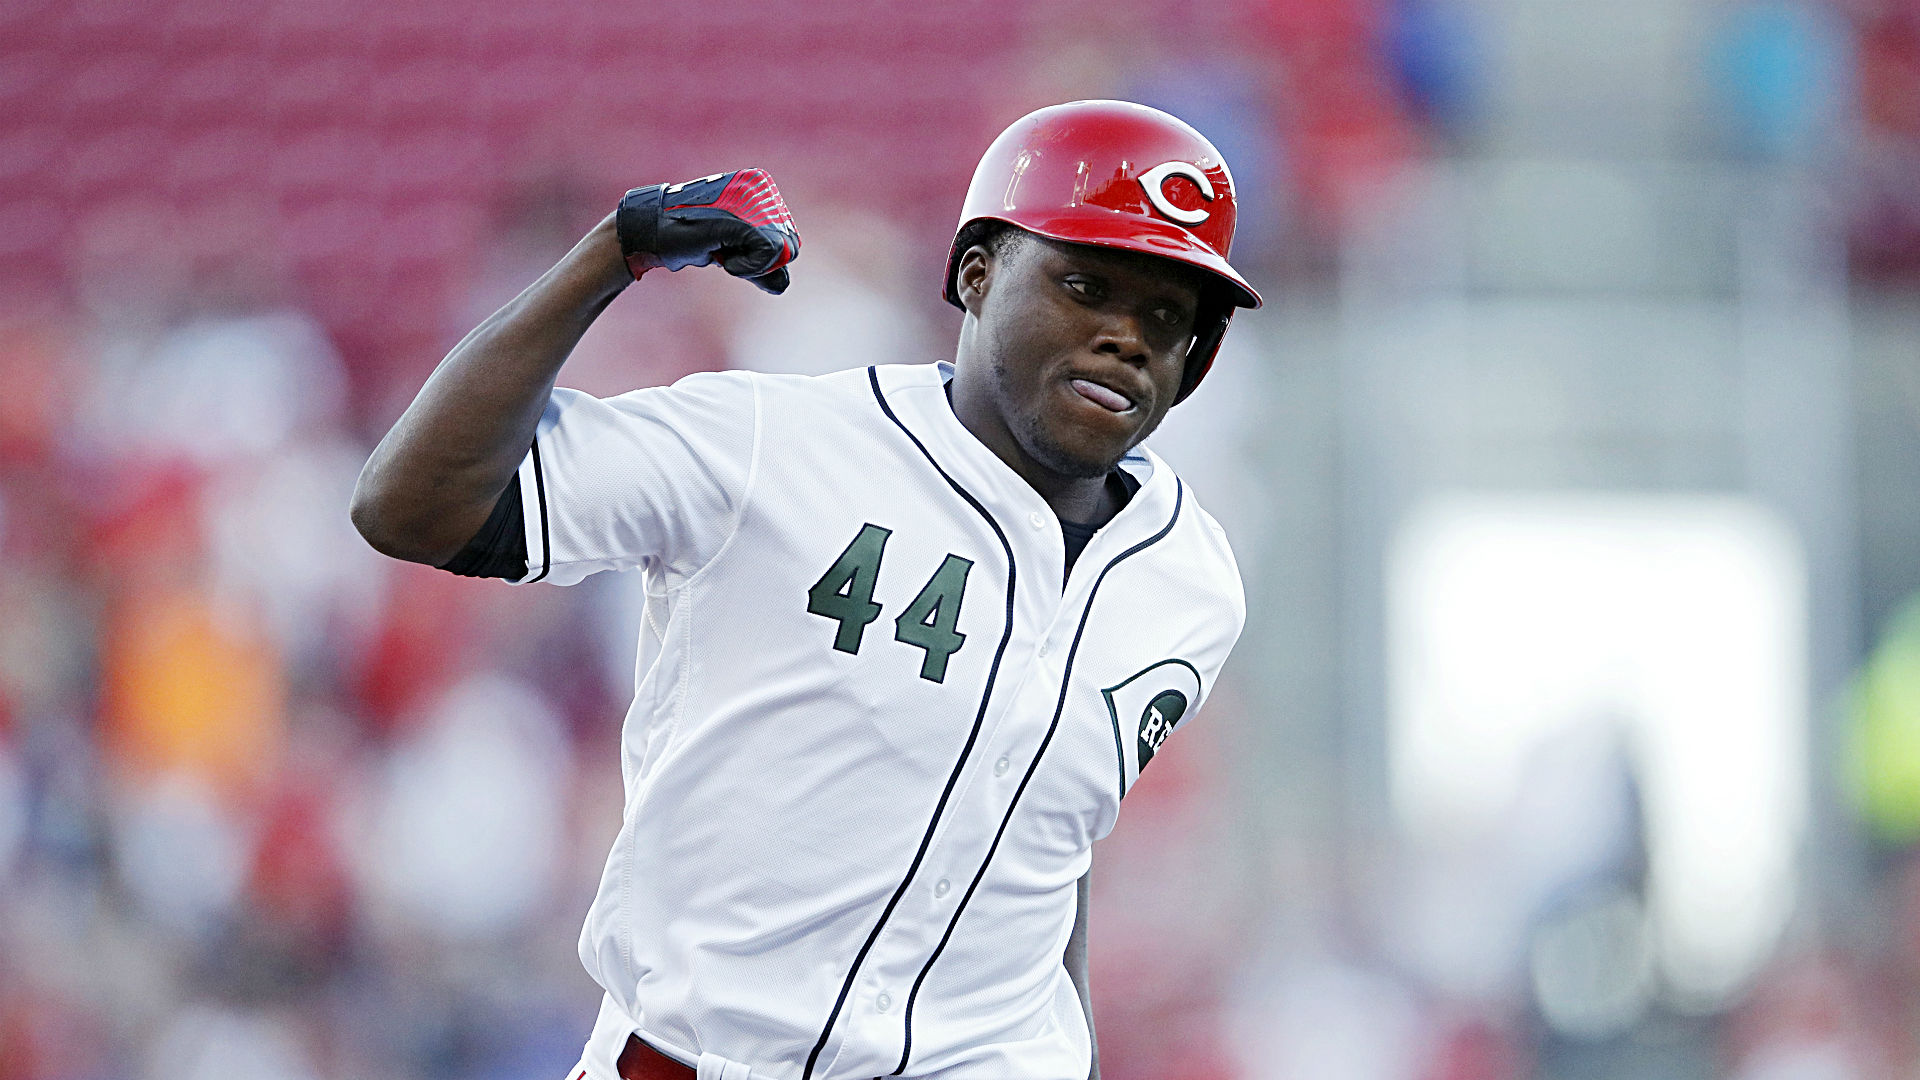 Aristides Aquino home runs